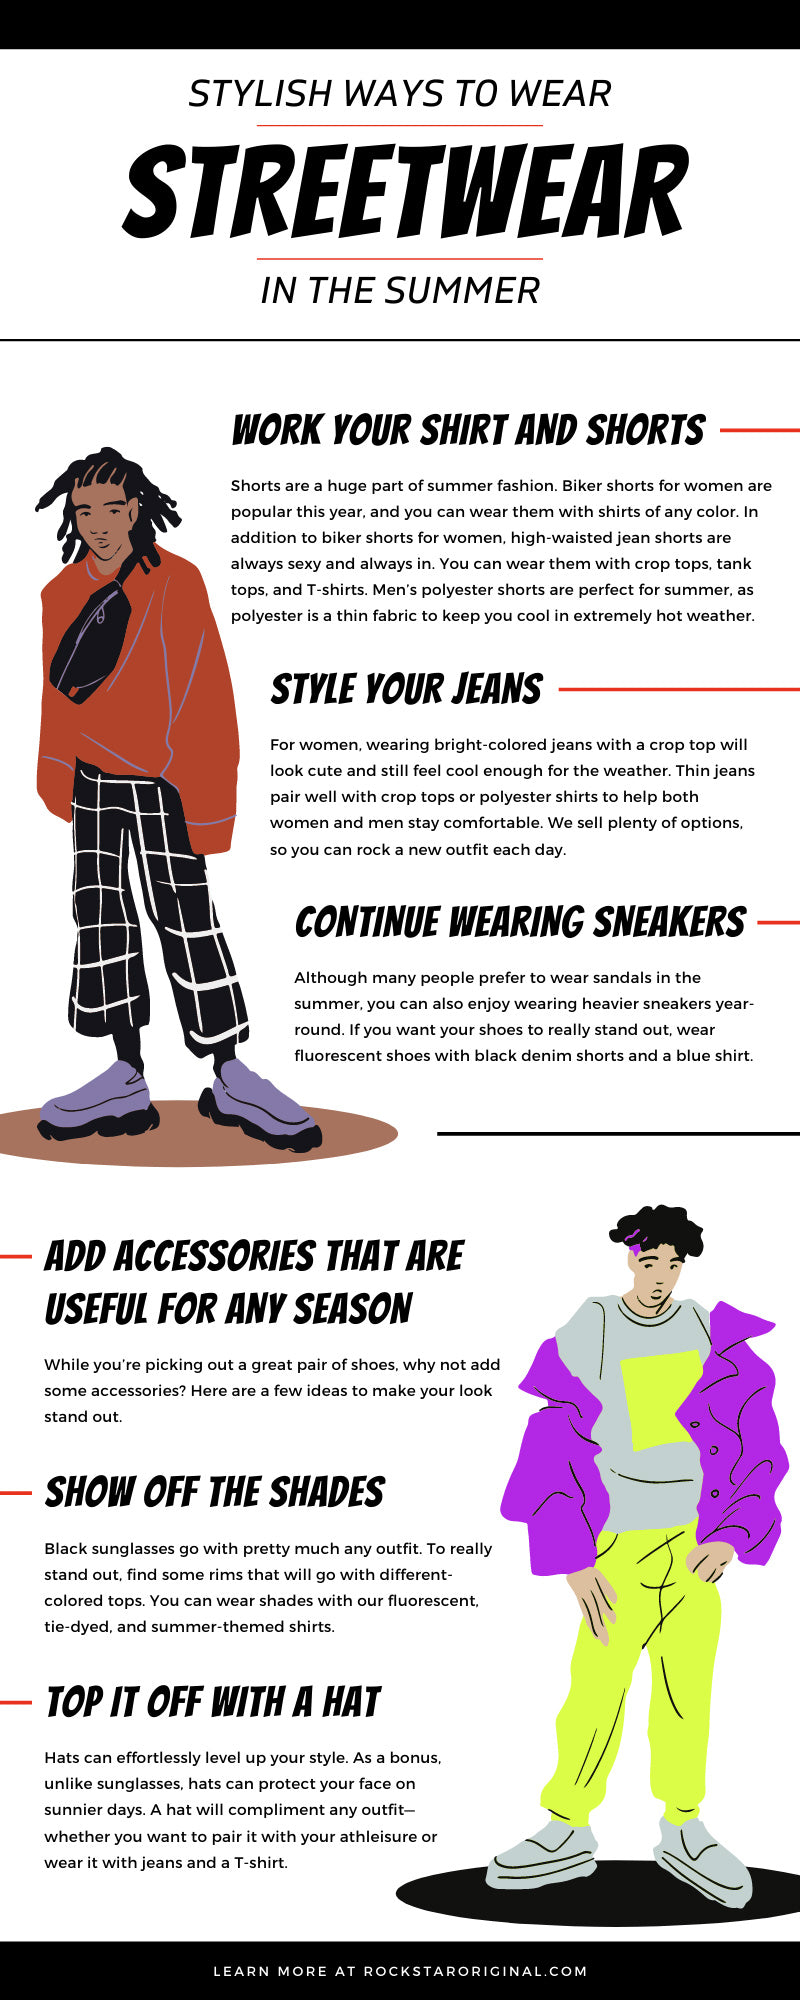 While many people wear streetwear for cooler seasons, you can wear it in the summer as well. Here are some stylish ways to wear streetwear in the summer.